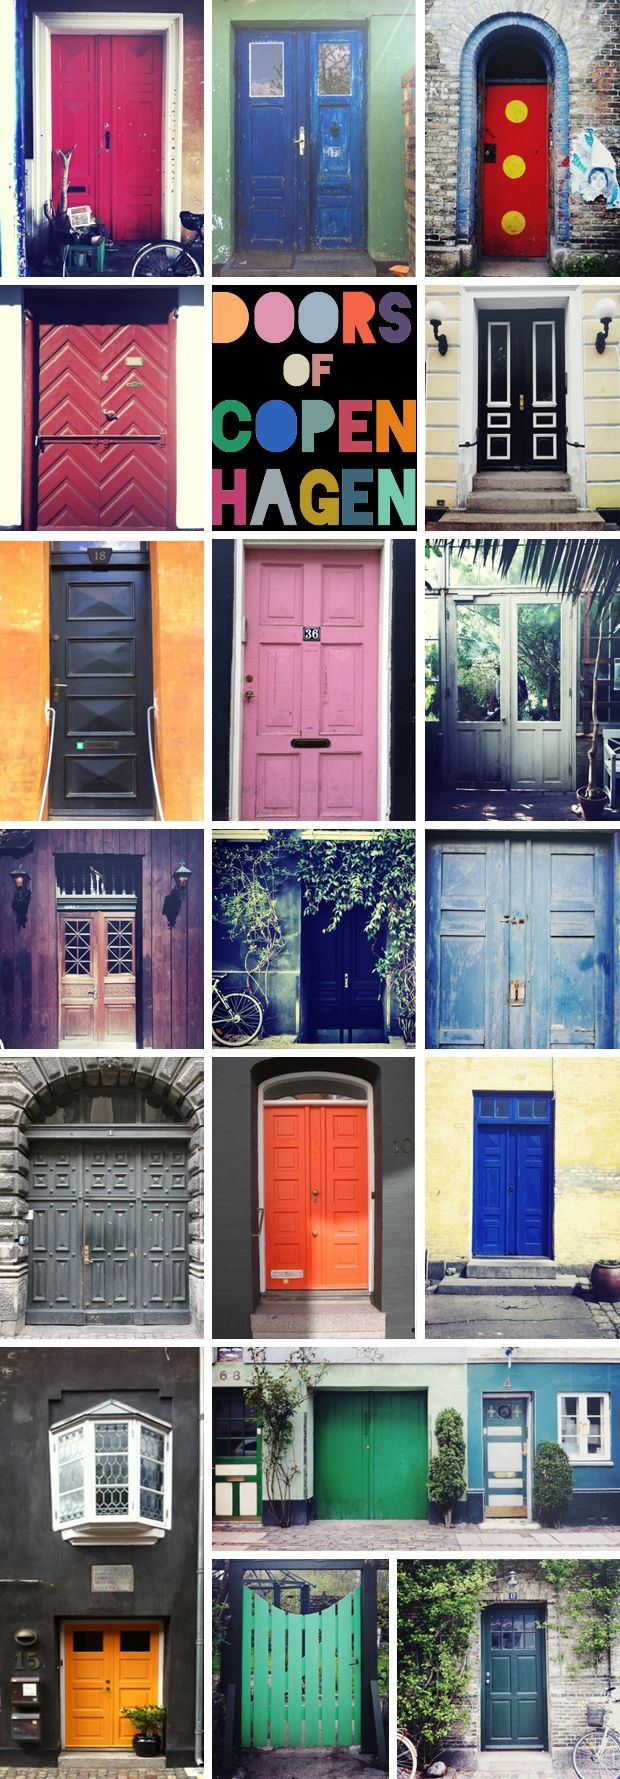 I love this idea for my upcoming trip! I'm already in love with the doors I've seen in pictures of Amsterdam and Paris... Can't wait to take pictures when I'm there. (Colorful Doors of Copenhagen)